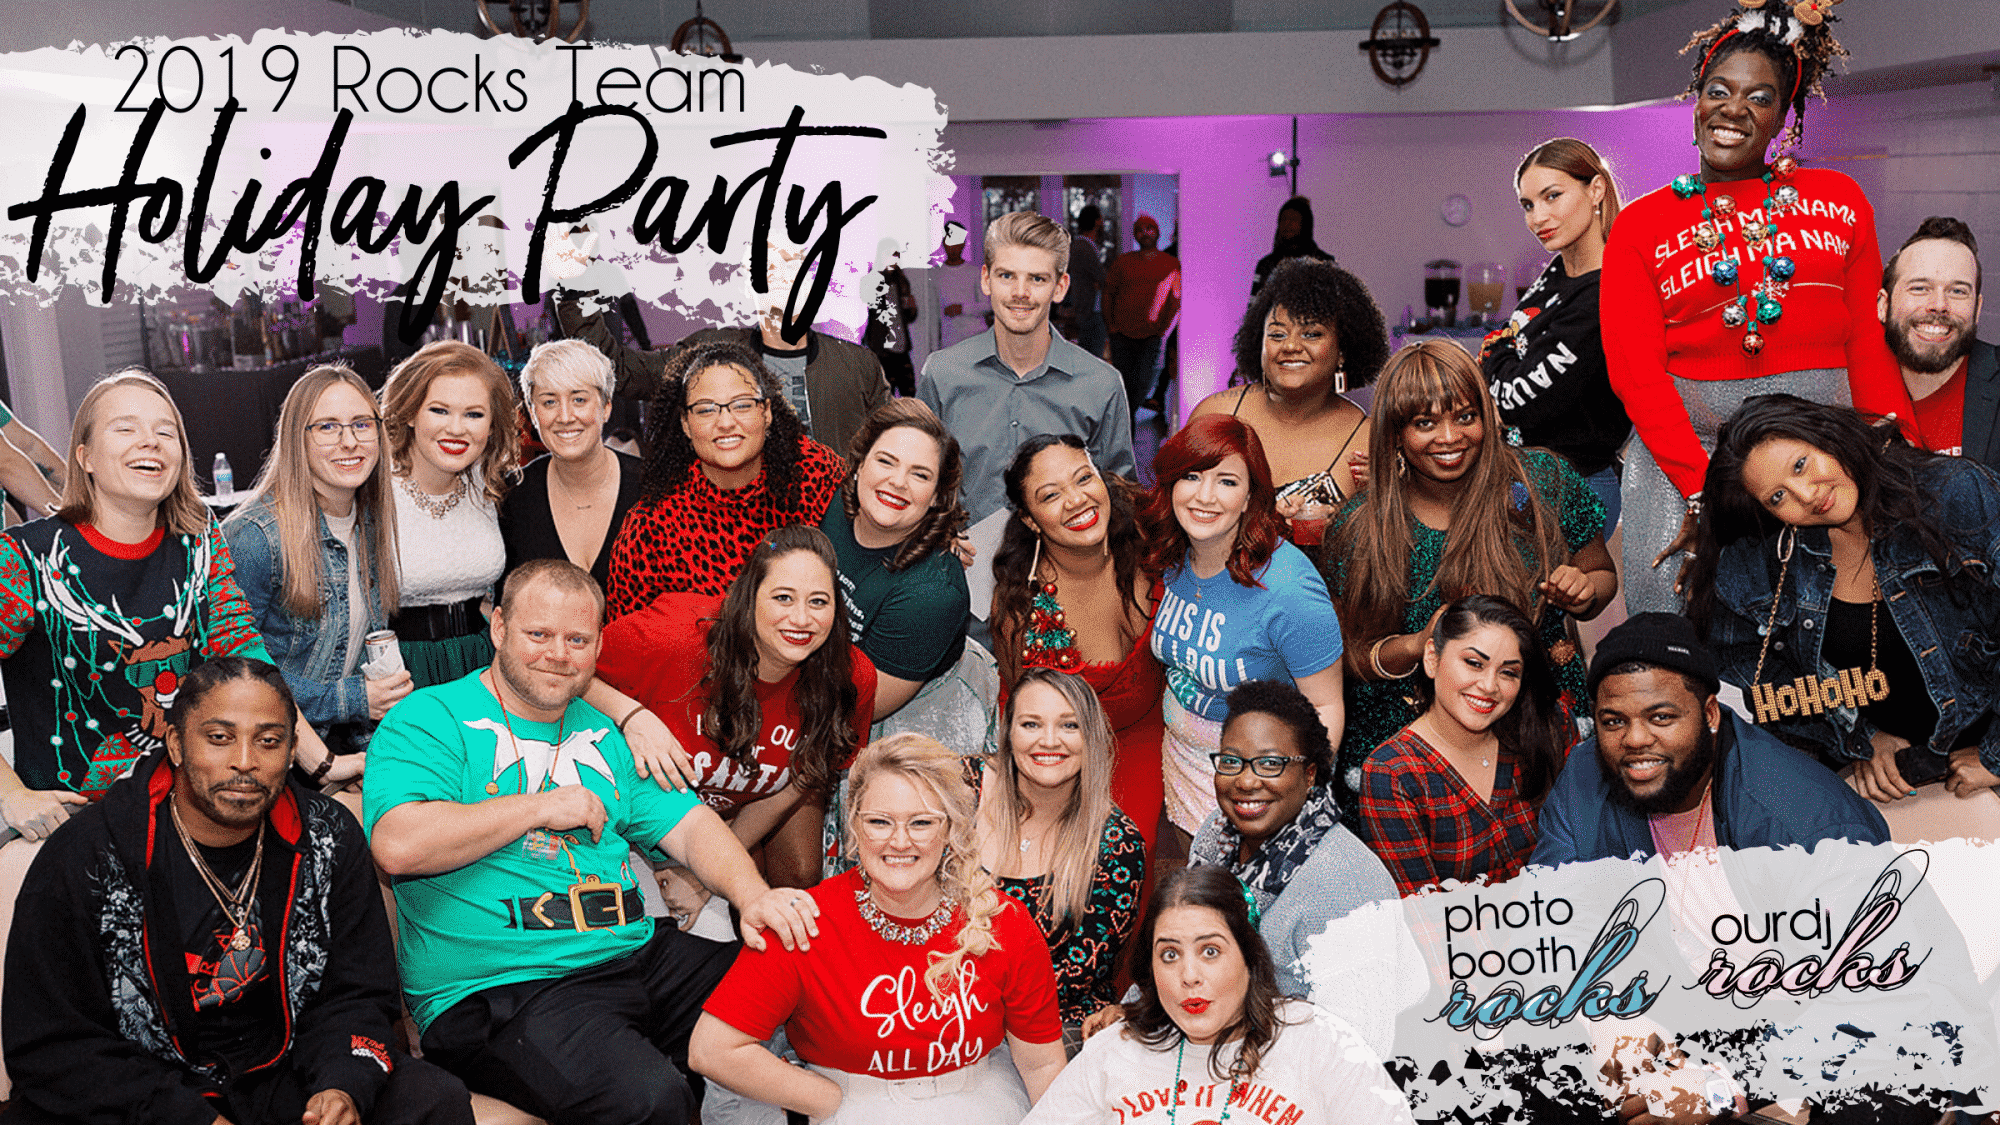 Team Rocks 2019 Holiday Party